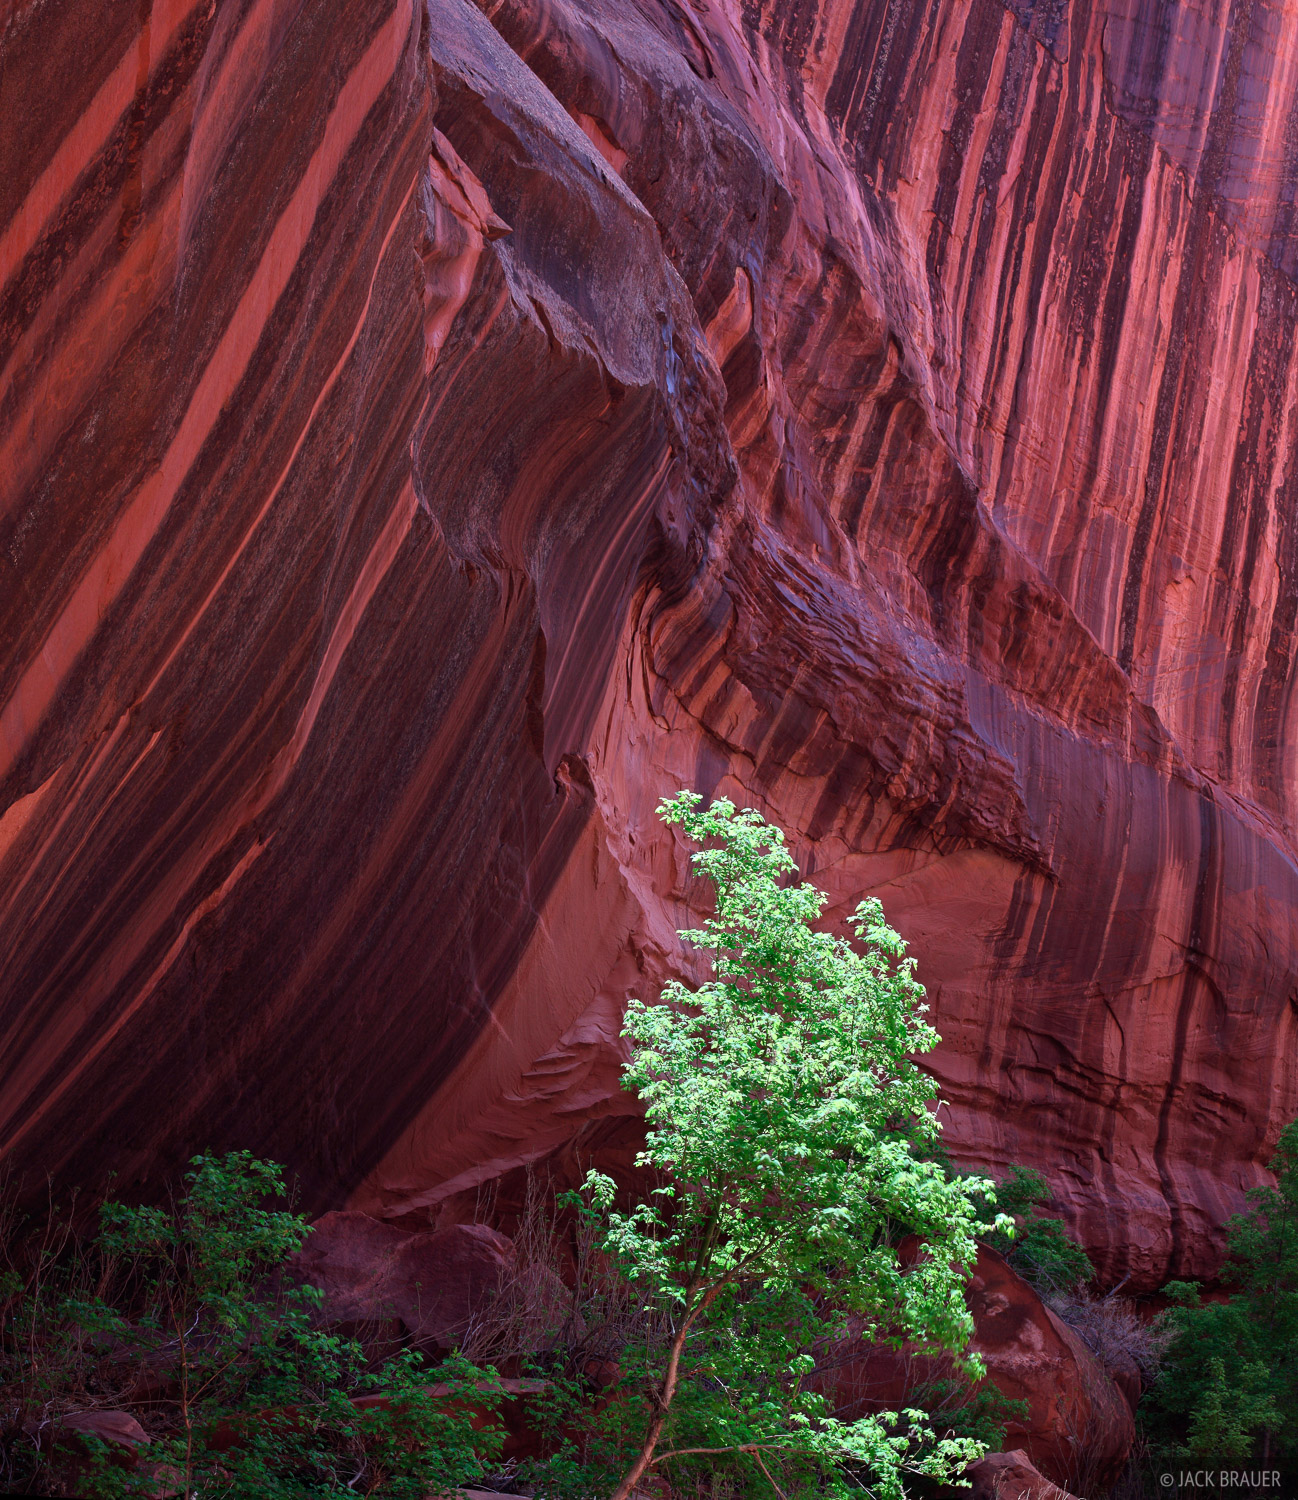 Escalante, Utah, desert varnish, canyon, Glen Canyon National Recreation Area, photo